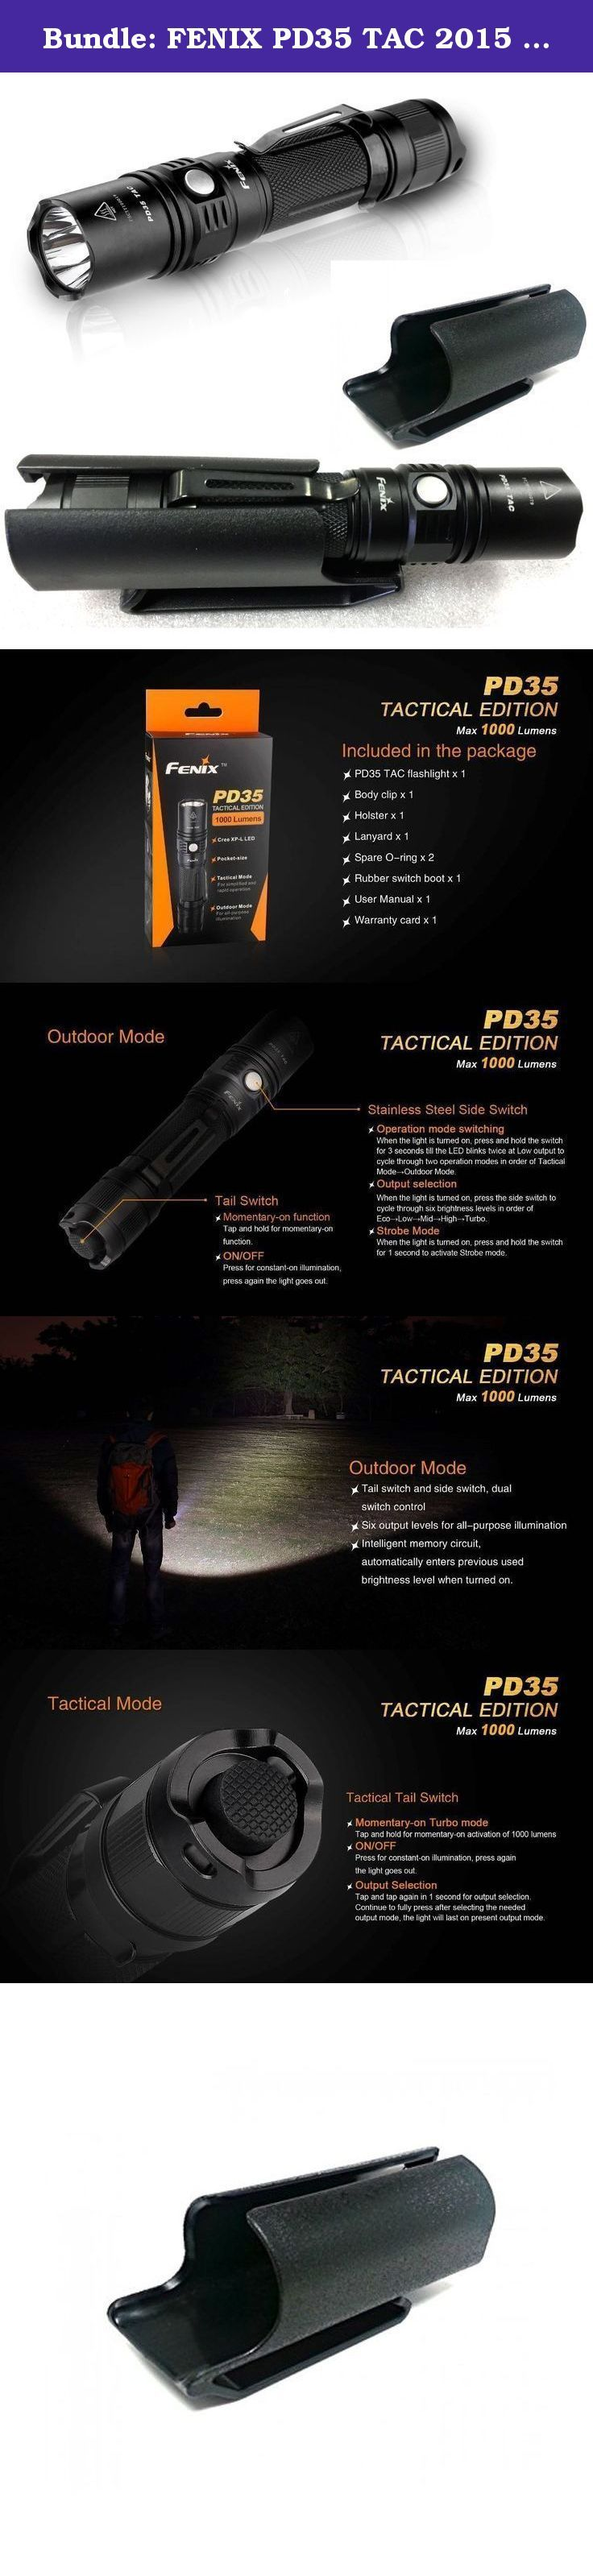 Bundle: FENIX PD35 TAC 2015 Tactical Edition 1000 Lumen CREE XP-L LED Flashlight with Clip-on Kydex Hard shell Holster. The PD35 TAC (Tactical Edition) remains a pocket size but has a higher performance and focuses on tactcial employment. Measured at less than 5.51 inches, it features up to a 1000-lumen output and has a beam distance of up to 656 feet. In the Outdoor Mode, the PD35 TAC delivers 6 output modes. However, the Tactical Mode strengthens the PD35 TAC with simplified and fast...